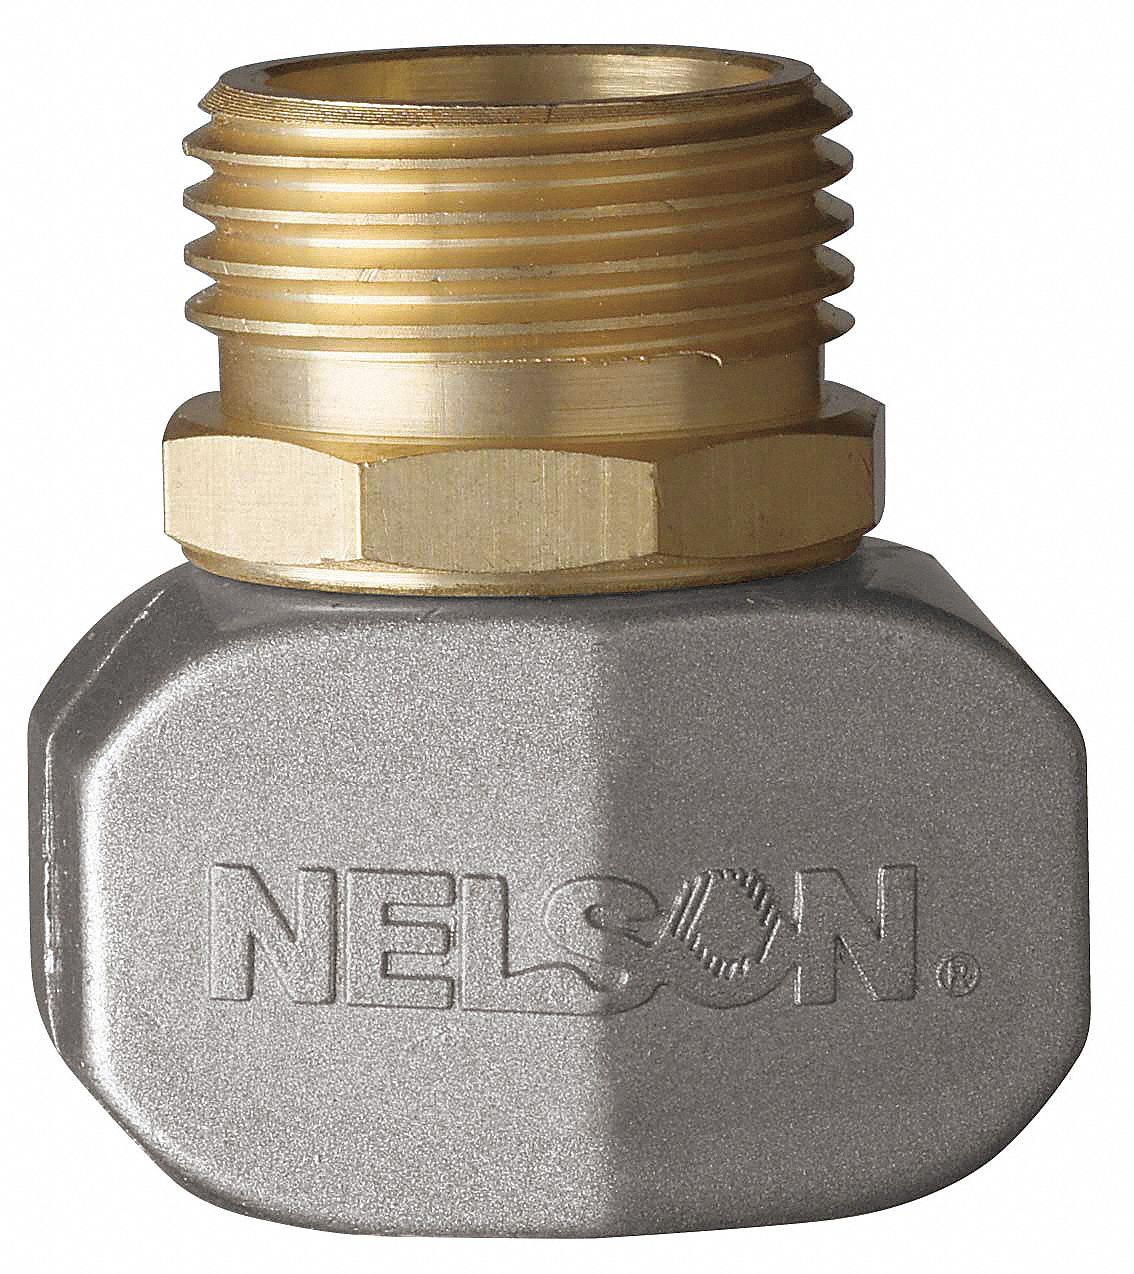 NELSON BrassZinc Hose End Repair Kit 58 to 34 GHT Connection